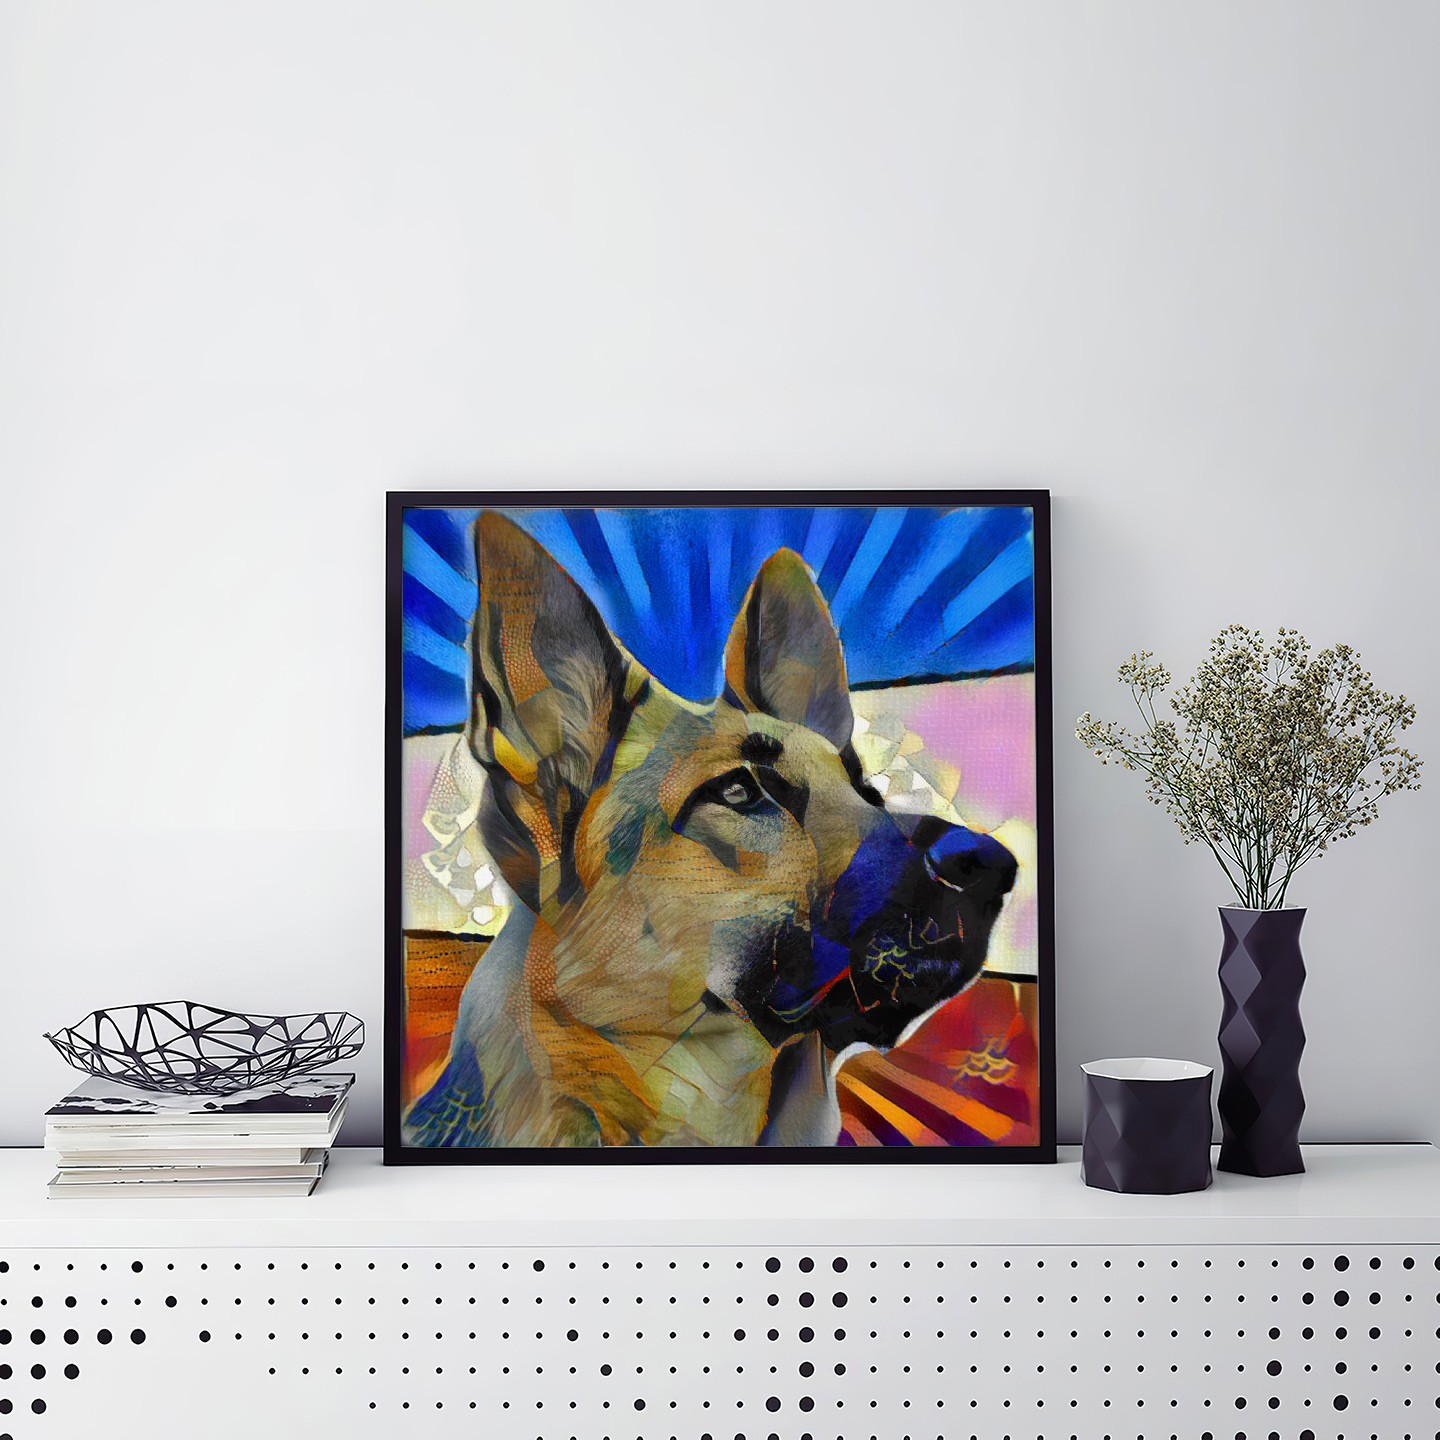 Clean Lines - One of a kind pet portraits made to order